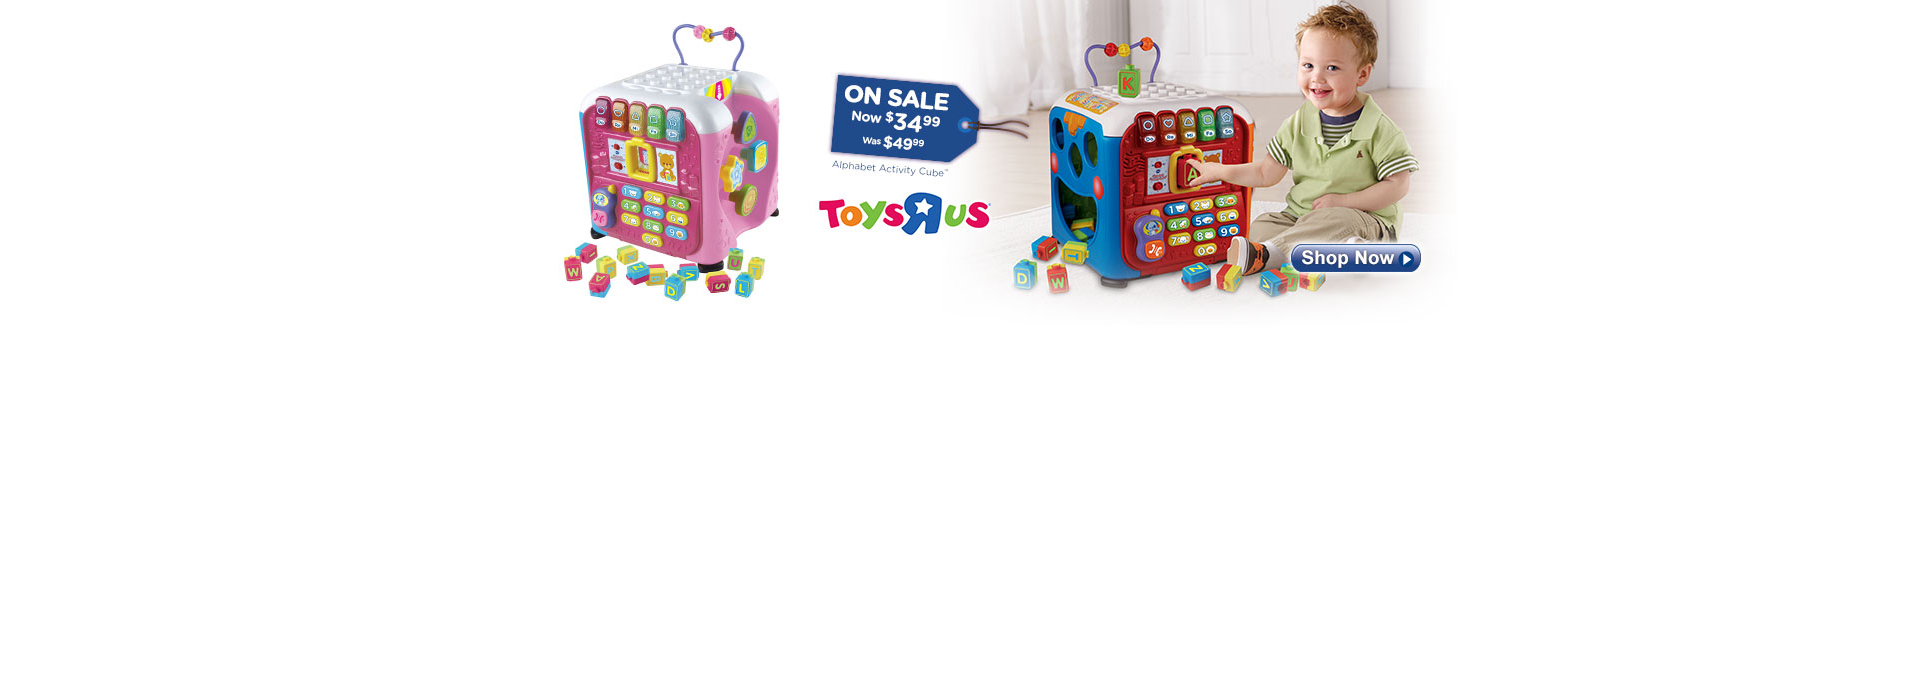 Alphabet Activity Cube (Both Colors) on sale for $34.99 at